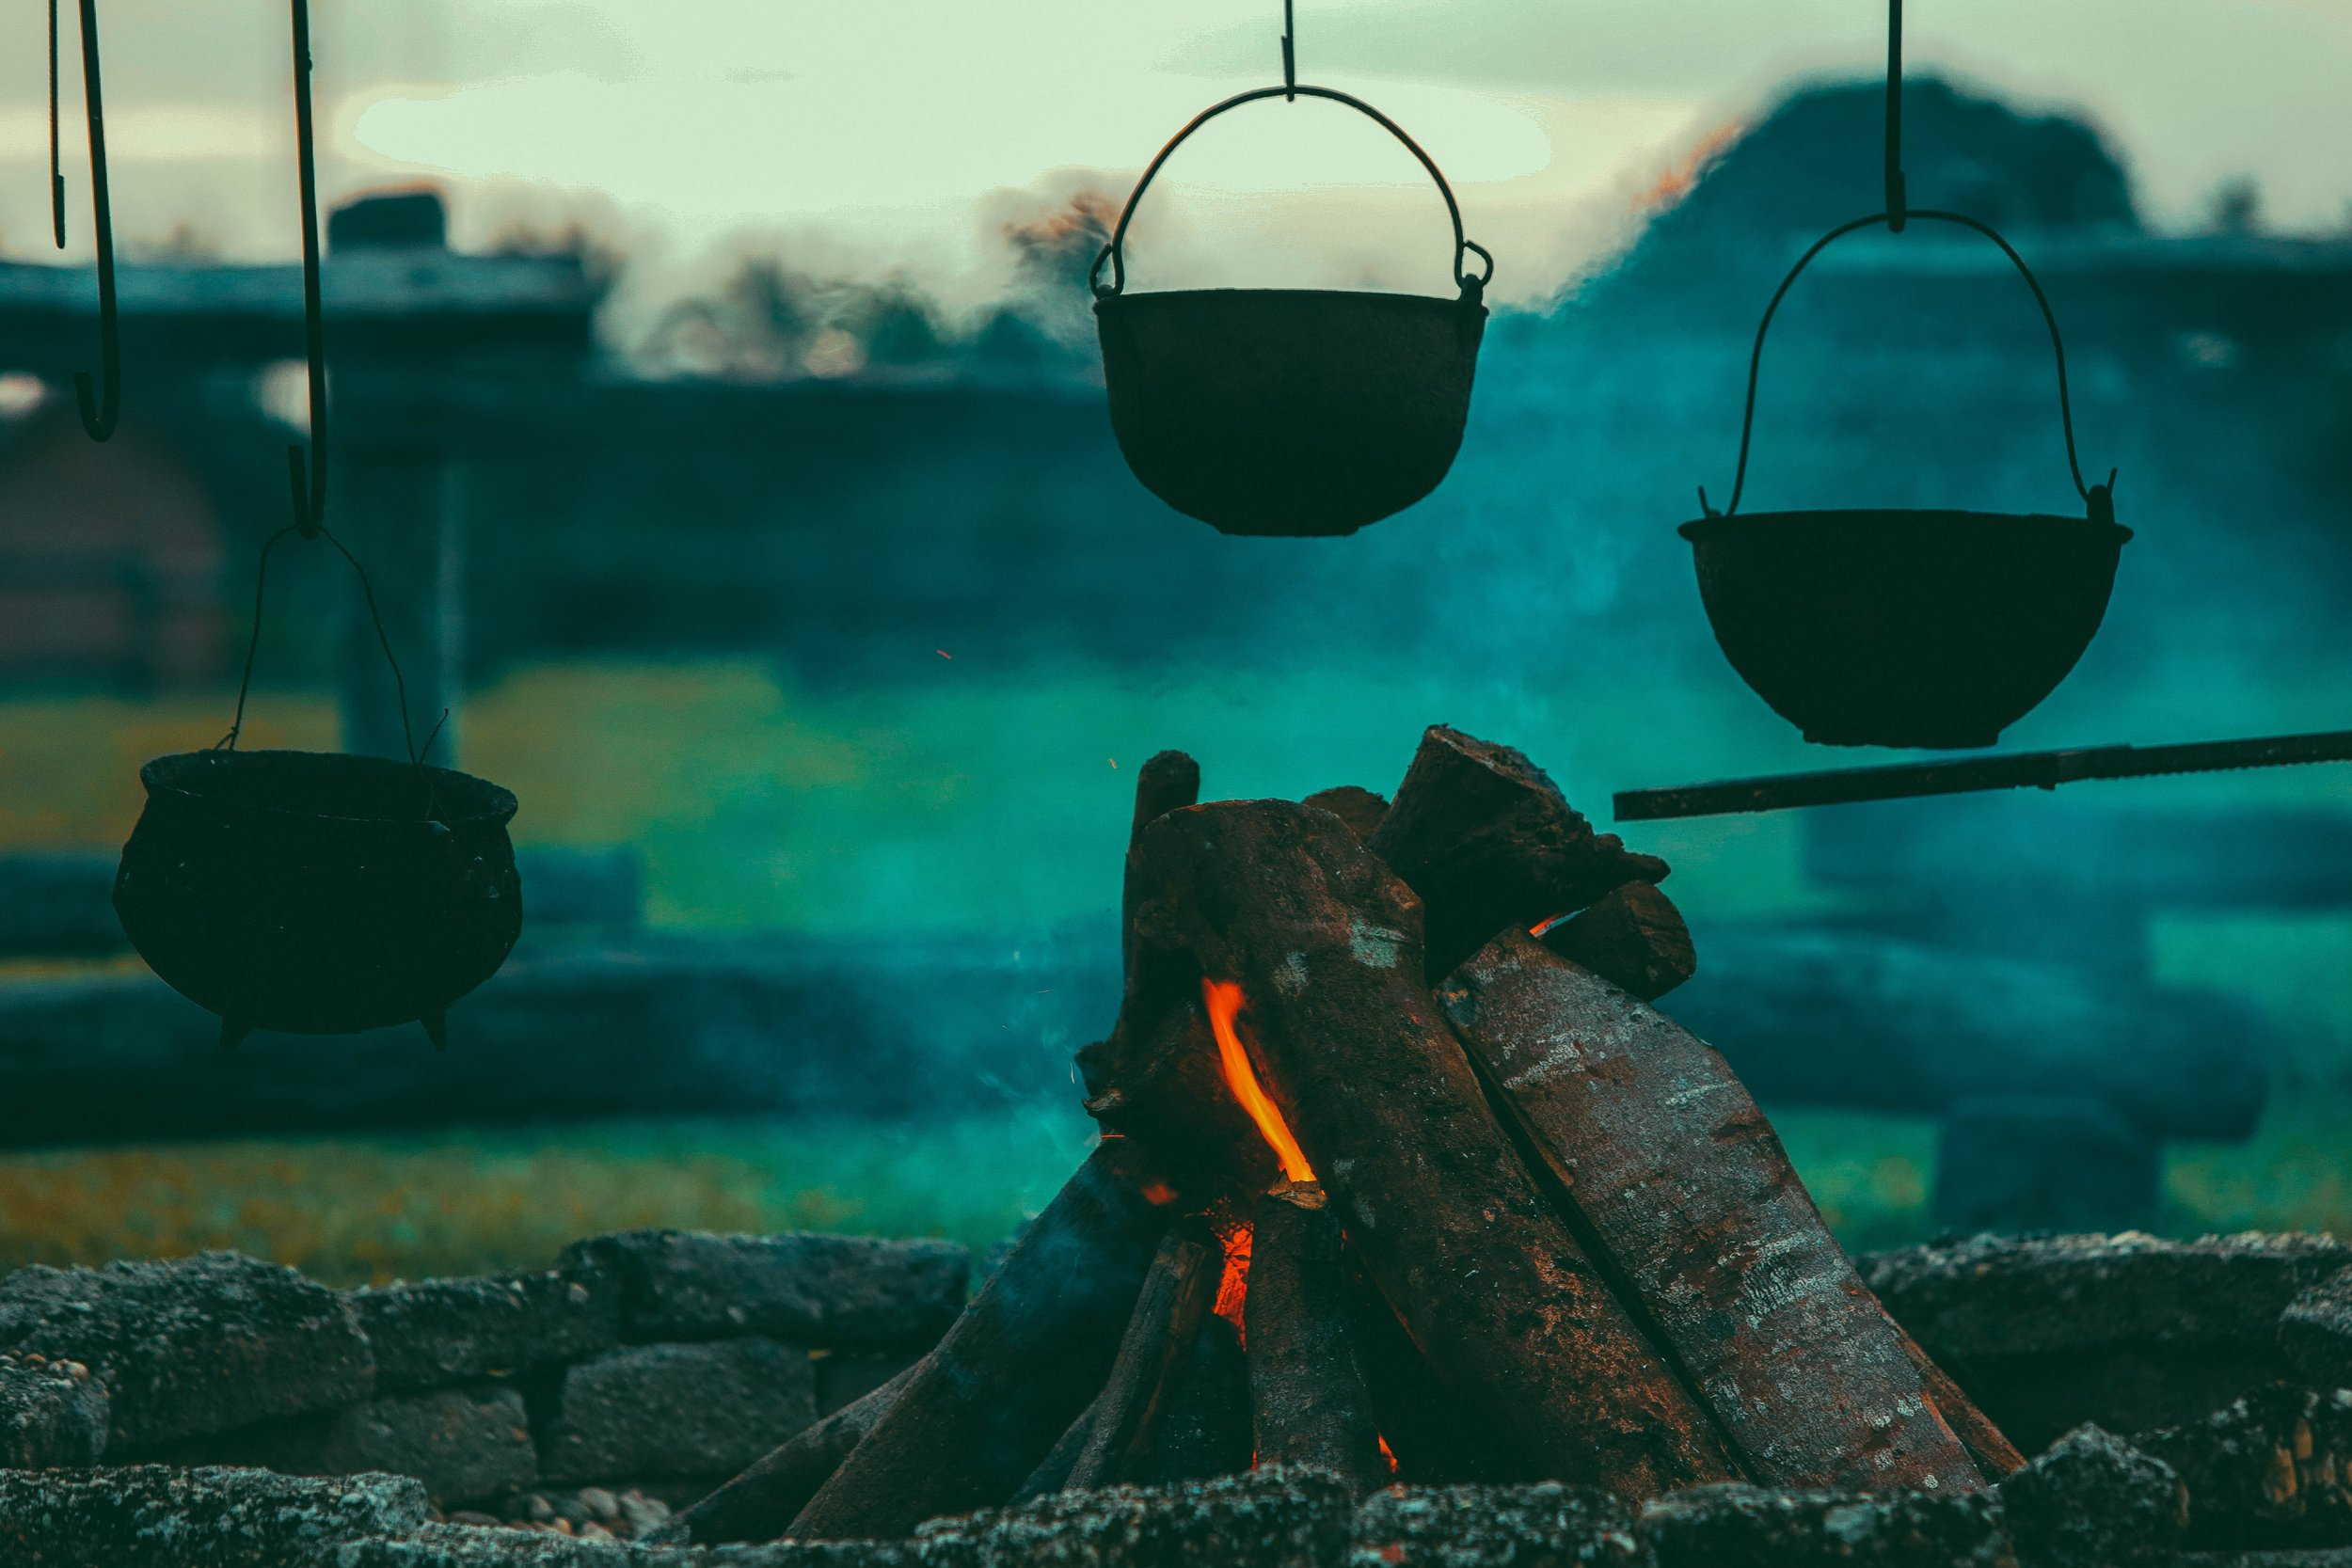 fancy camping food, make ahead gourmet camping meals, best campfire recipes, gourmet open fire cooking recipes, glamping food menu